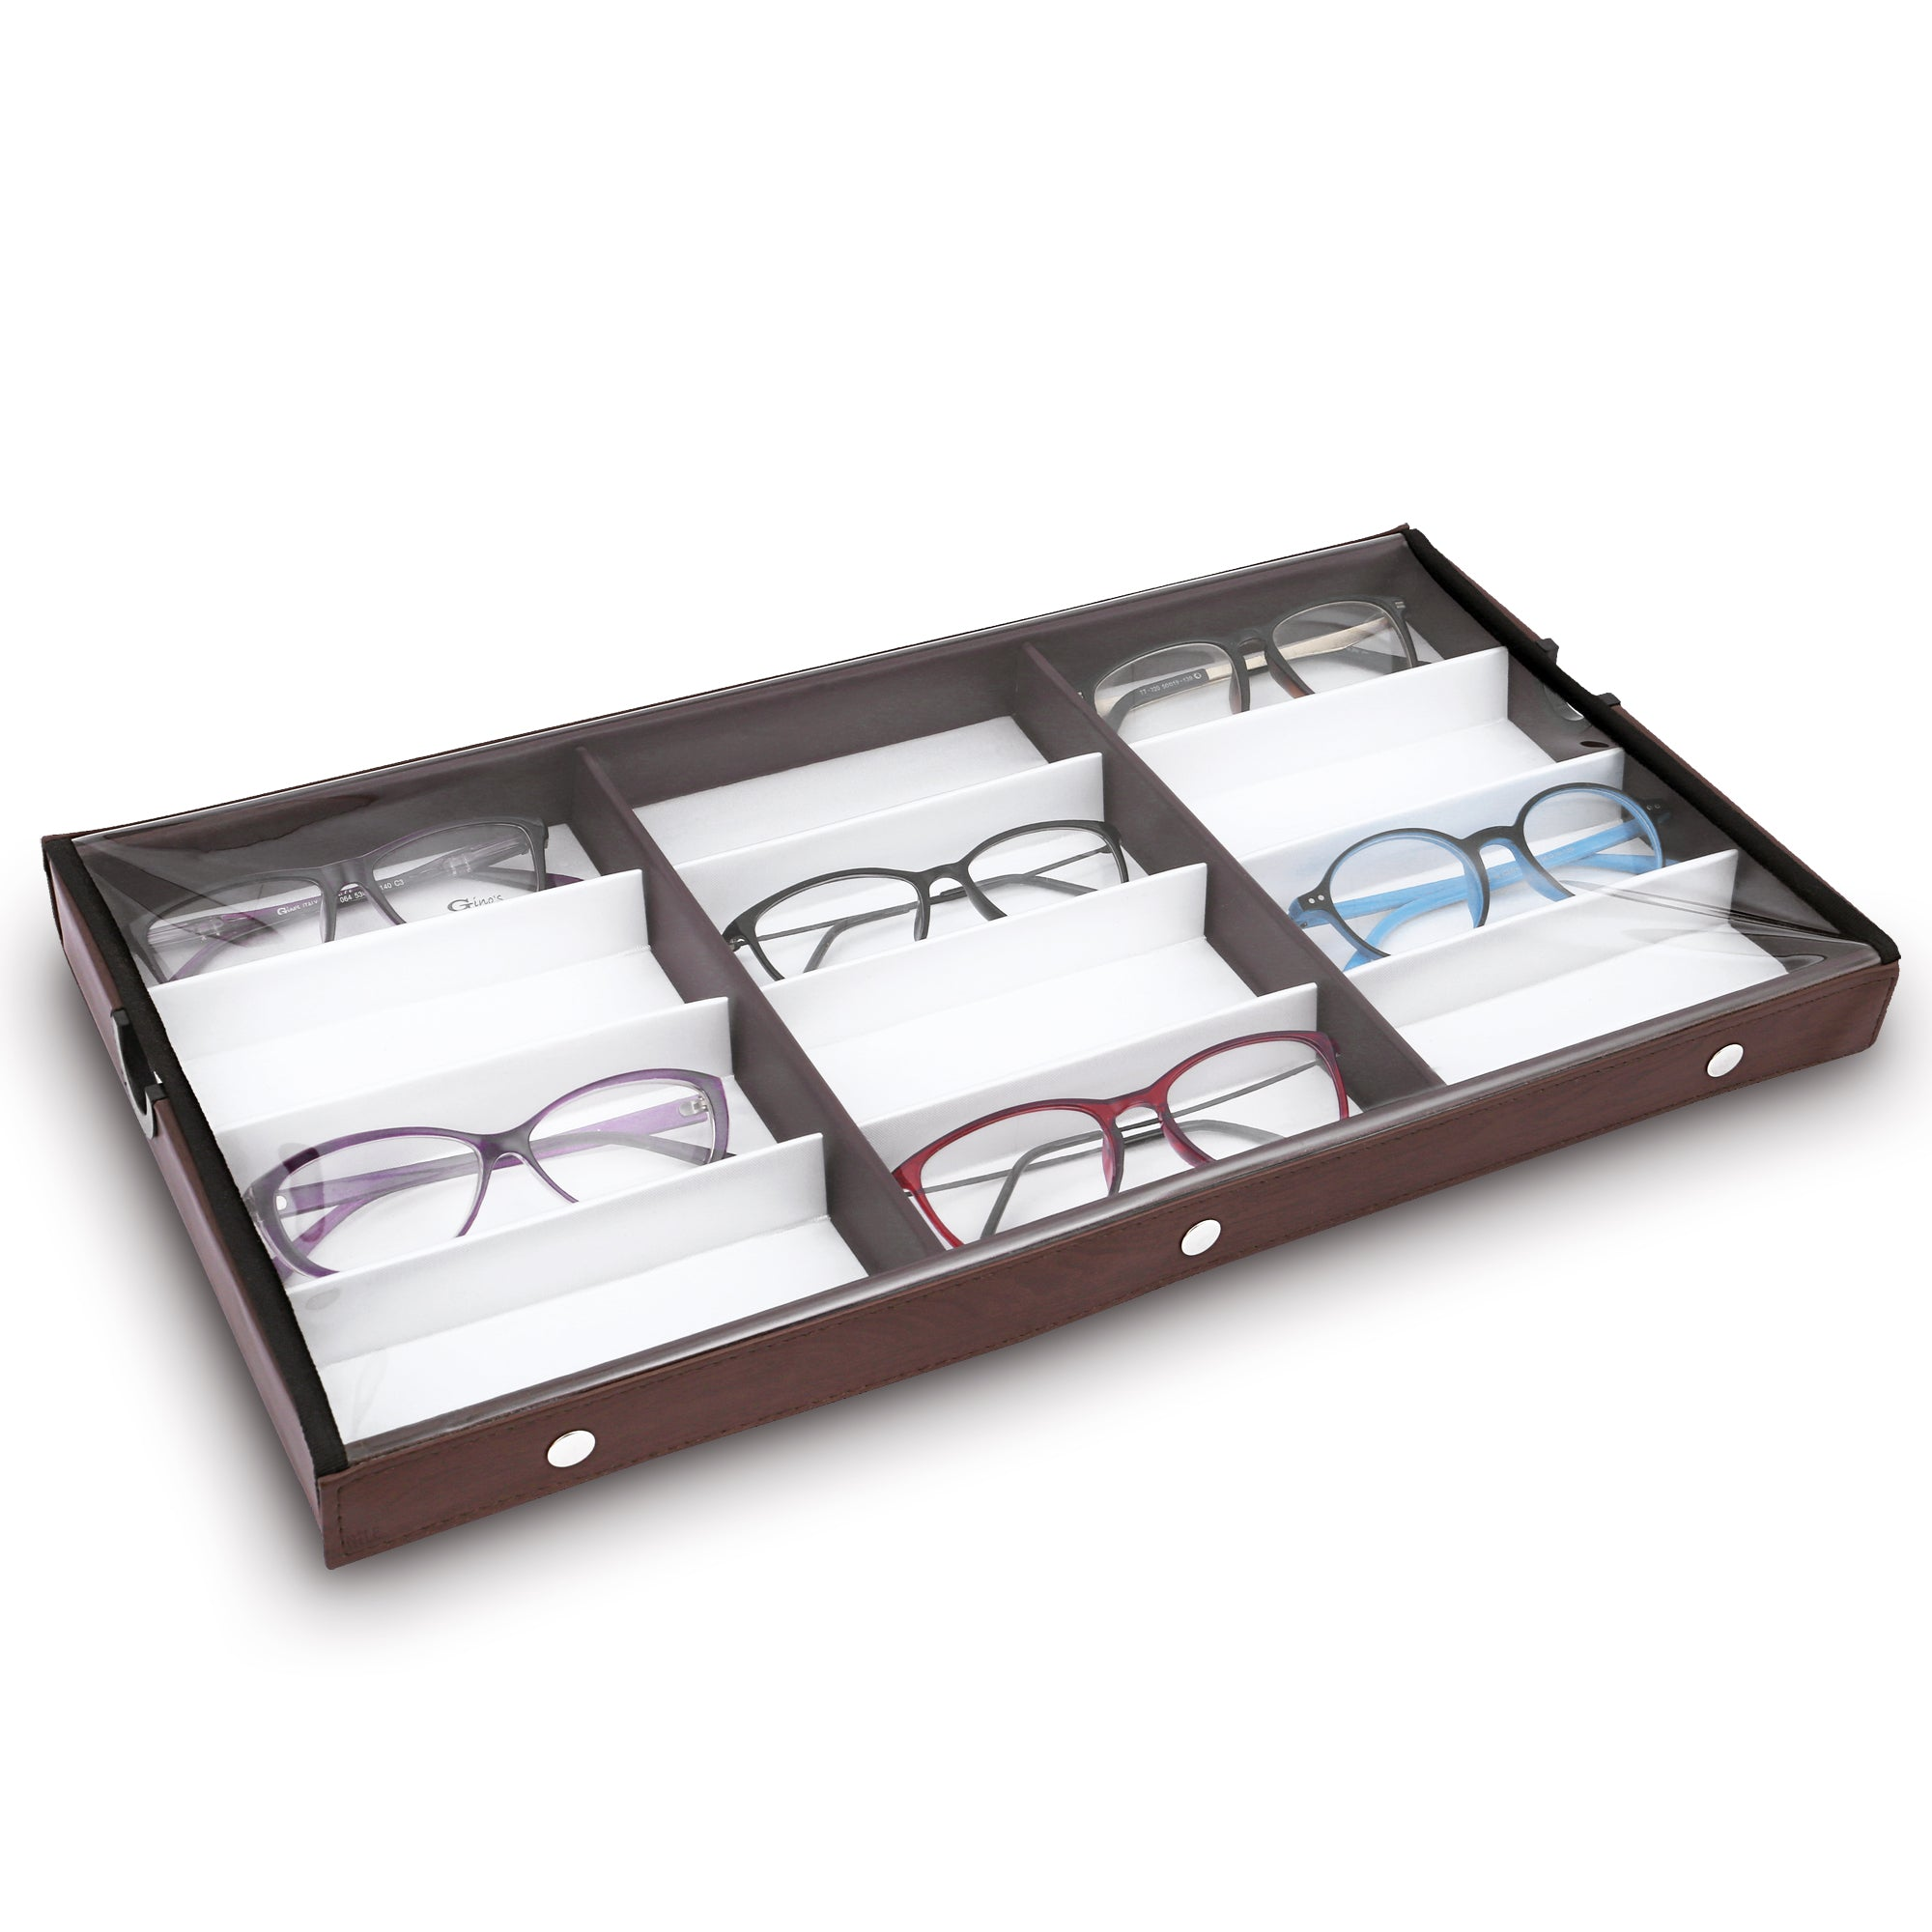 #TR-34BCS-WDBR Eyewears Organizer Box - 12 Compartments Eyewear Case for Small or Medium Eyeglasses